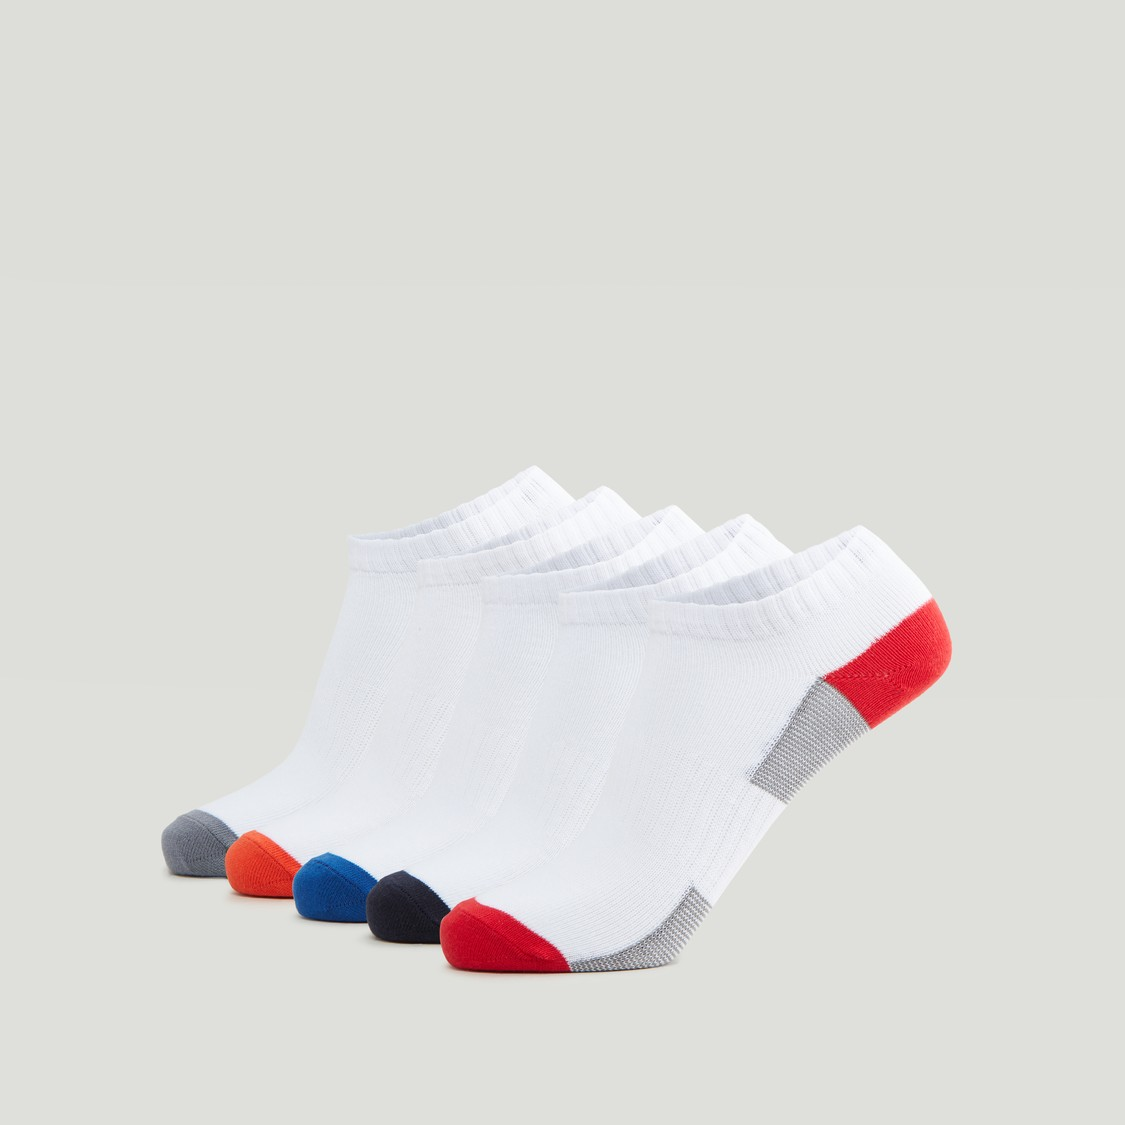 Set of 5 - Printed and Textured Ankle Length Socks